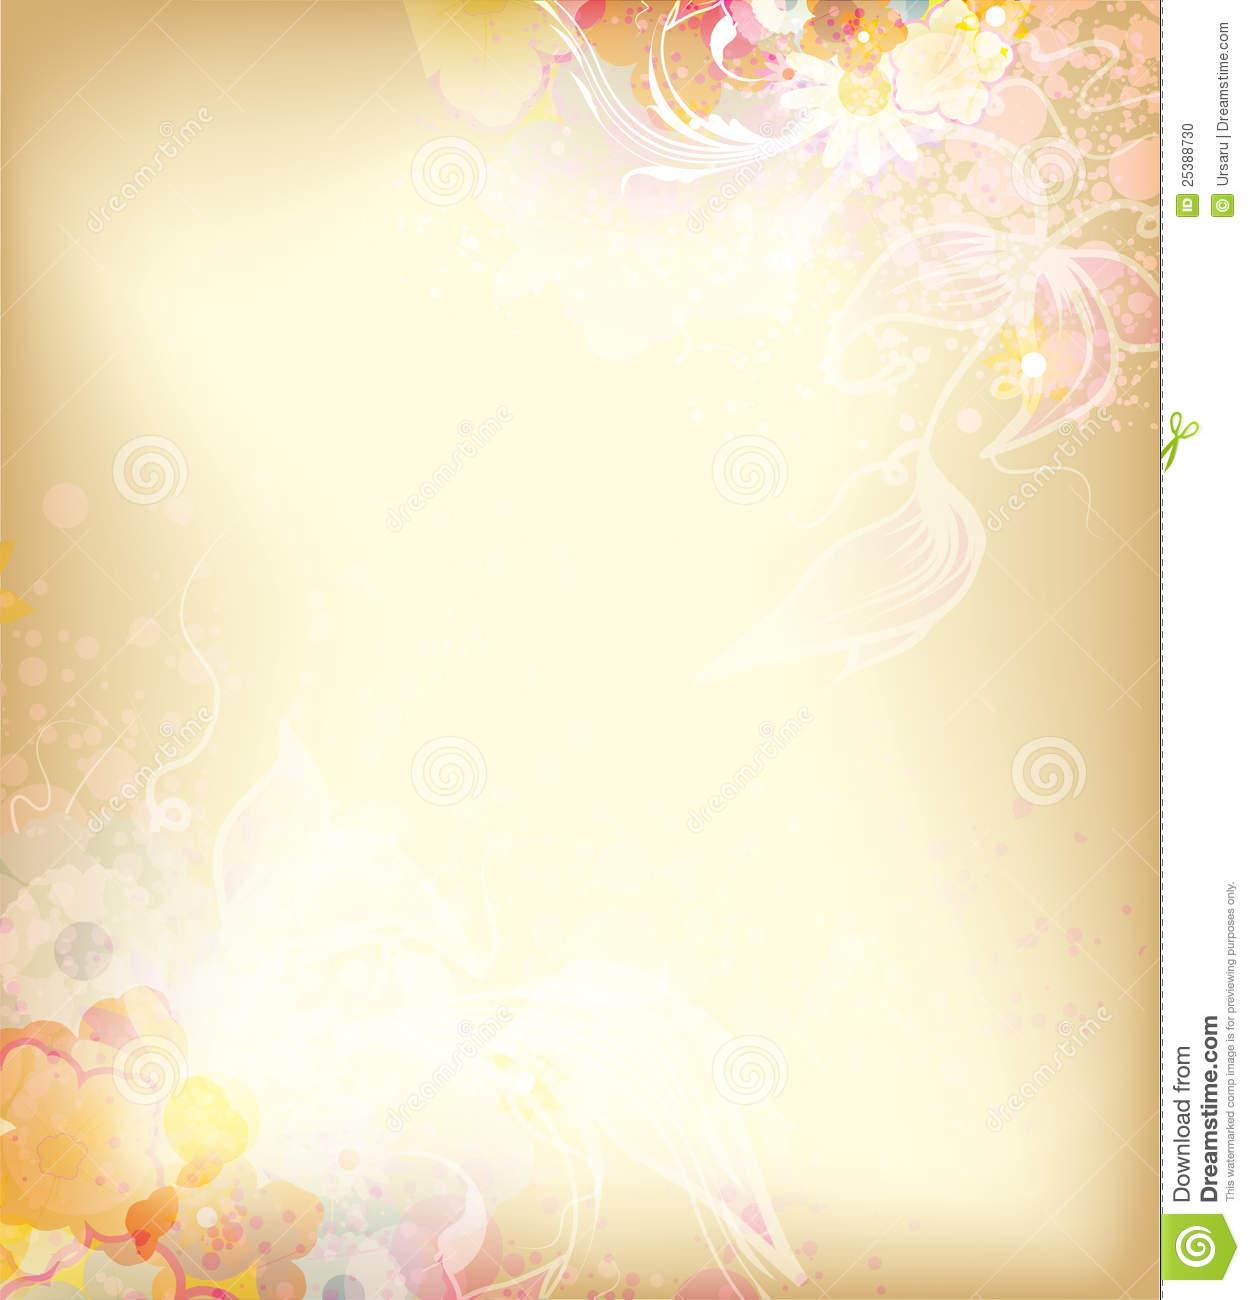 Vintage Watercolor Background Stock Photo - Image: 25388730